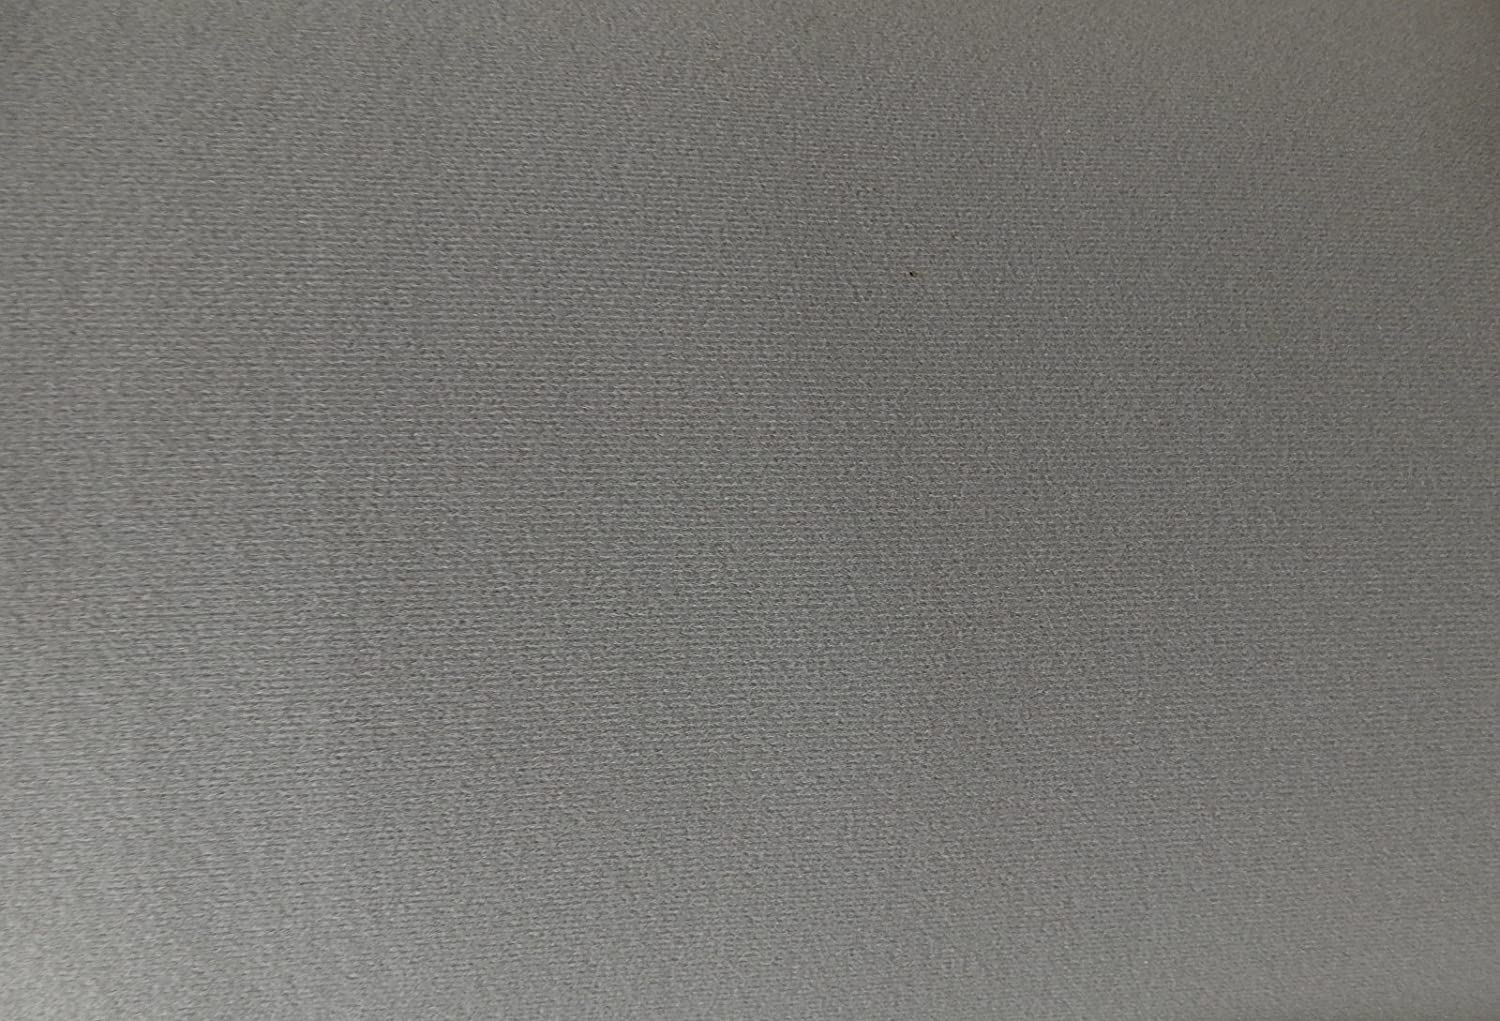 Antelope 4 Yards Automotive Headliner Fabric Foam Backed